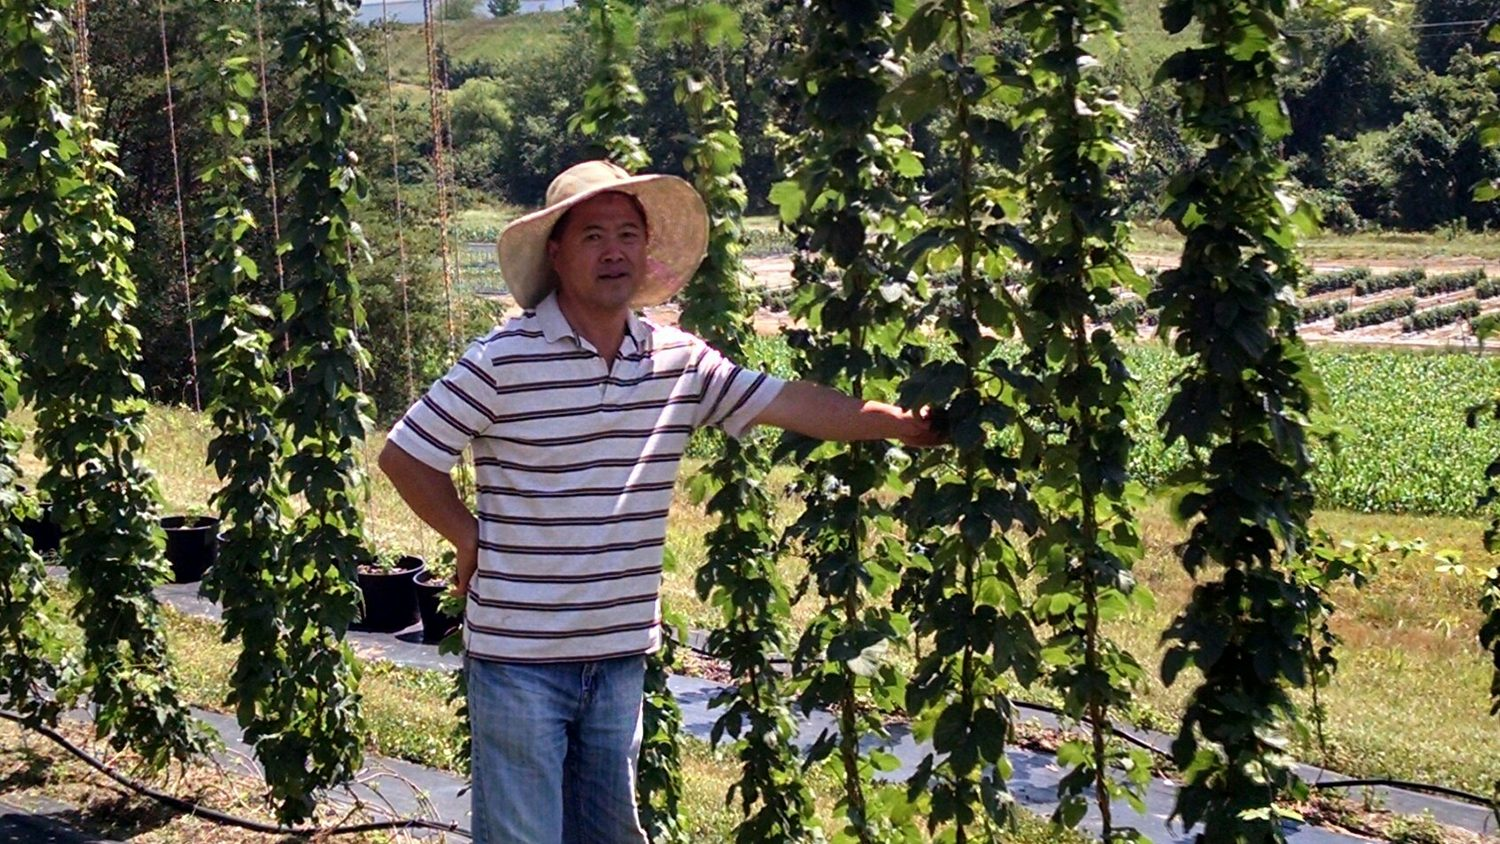 Luping Qu stands beside a hops trellis.